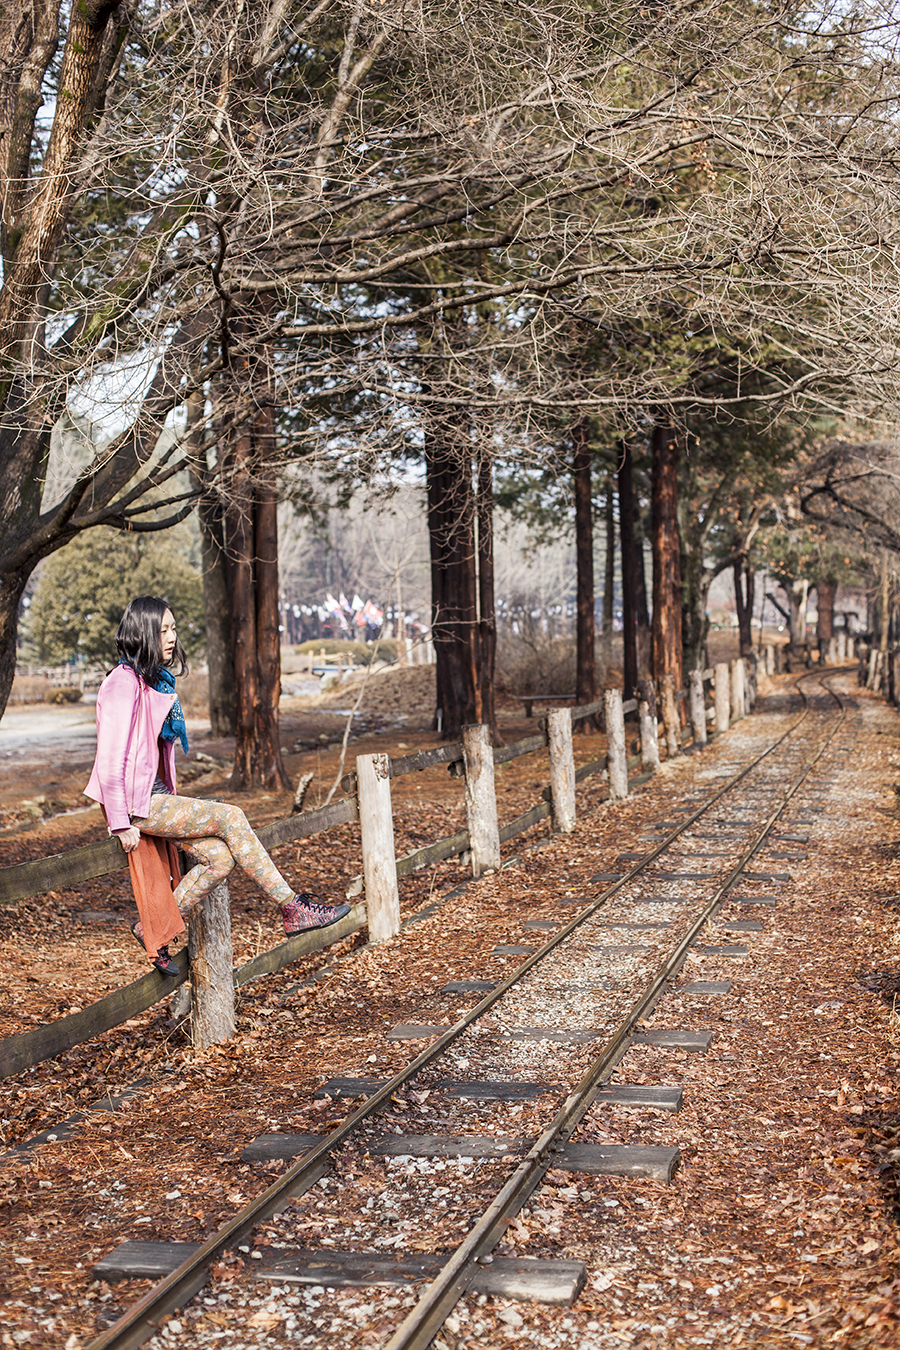 Outfit at Nami Island: Uniqlo grey bratop camisole, Viparo pink lambskin leather jacket with gold zipper, Forever 21 silver party shorts and long rust cardigan, Urban Outfitters floral lace tights, H&M grey men's coat, Marshalls blue shawl with gold studs.